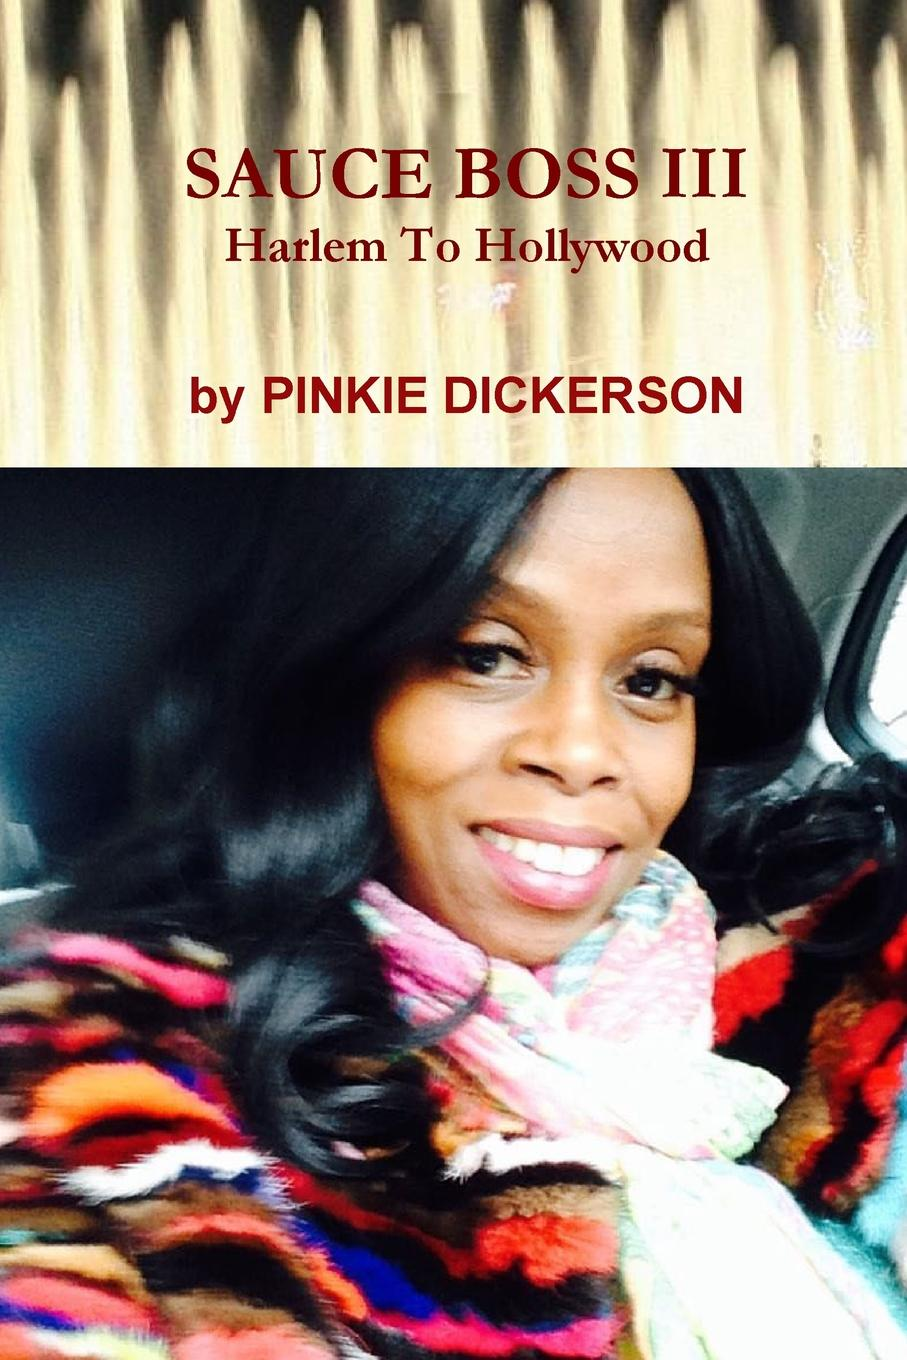 PINKIE DICKERSON SAUCE BOSS III. Harlem To Hollywood david arnold the sound of james bond hollywood in hamburg